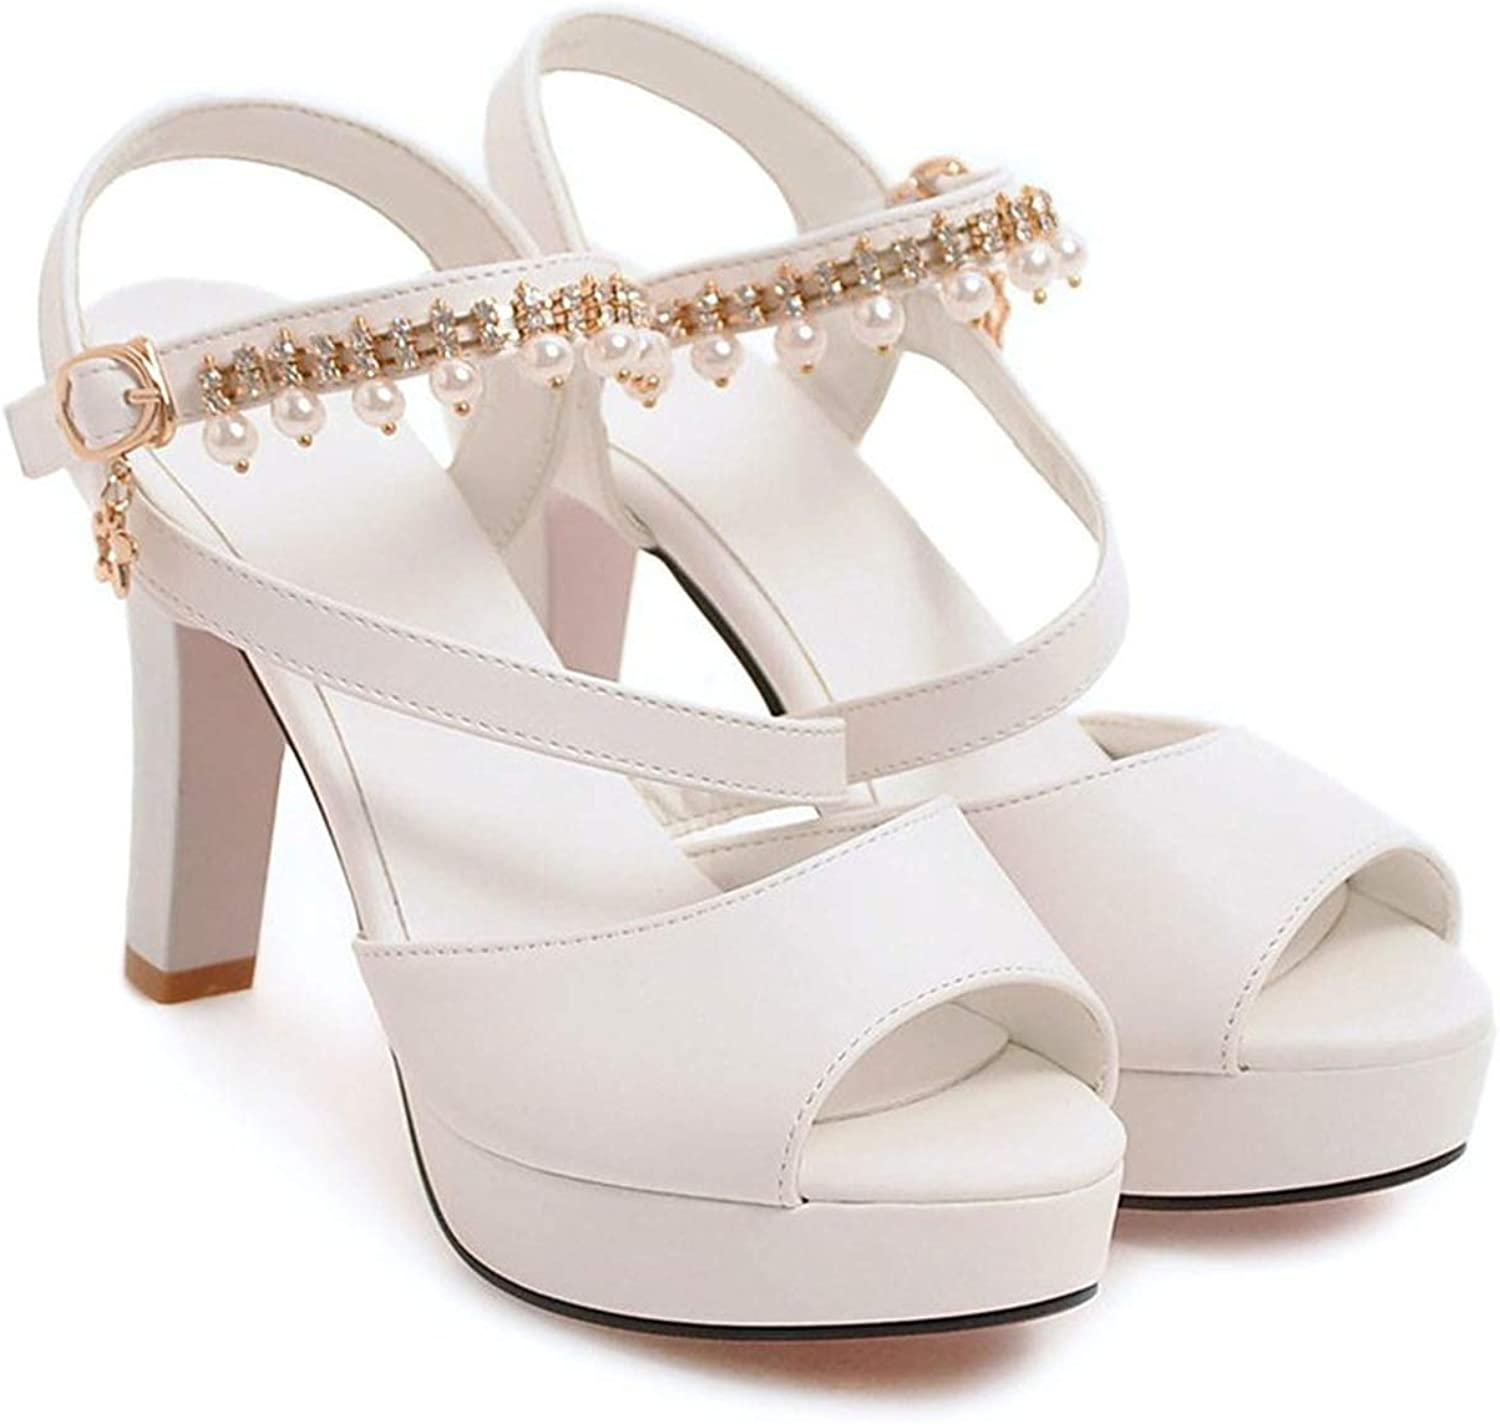 Good-memories pumps Platform shoes with Buckle Extreme high Heels Elegant Solid Casual Woman Sandals